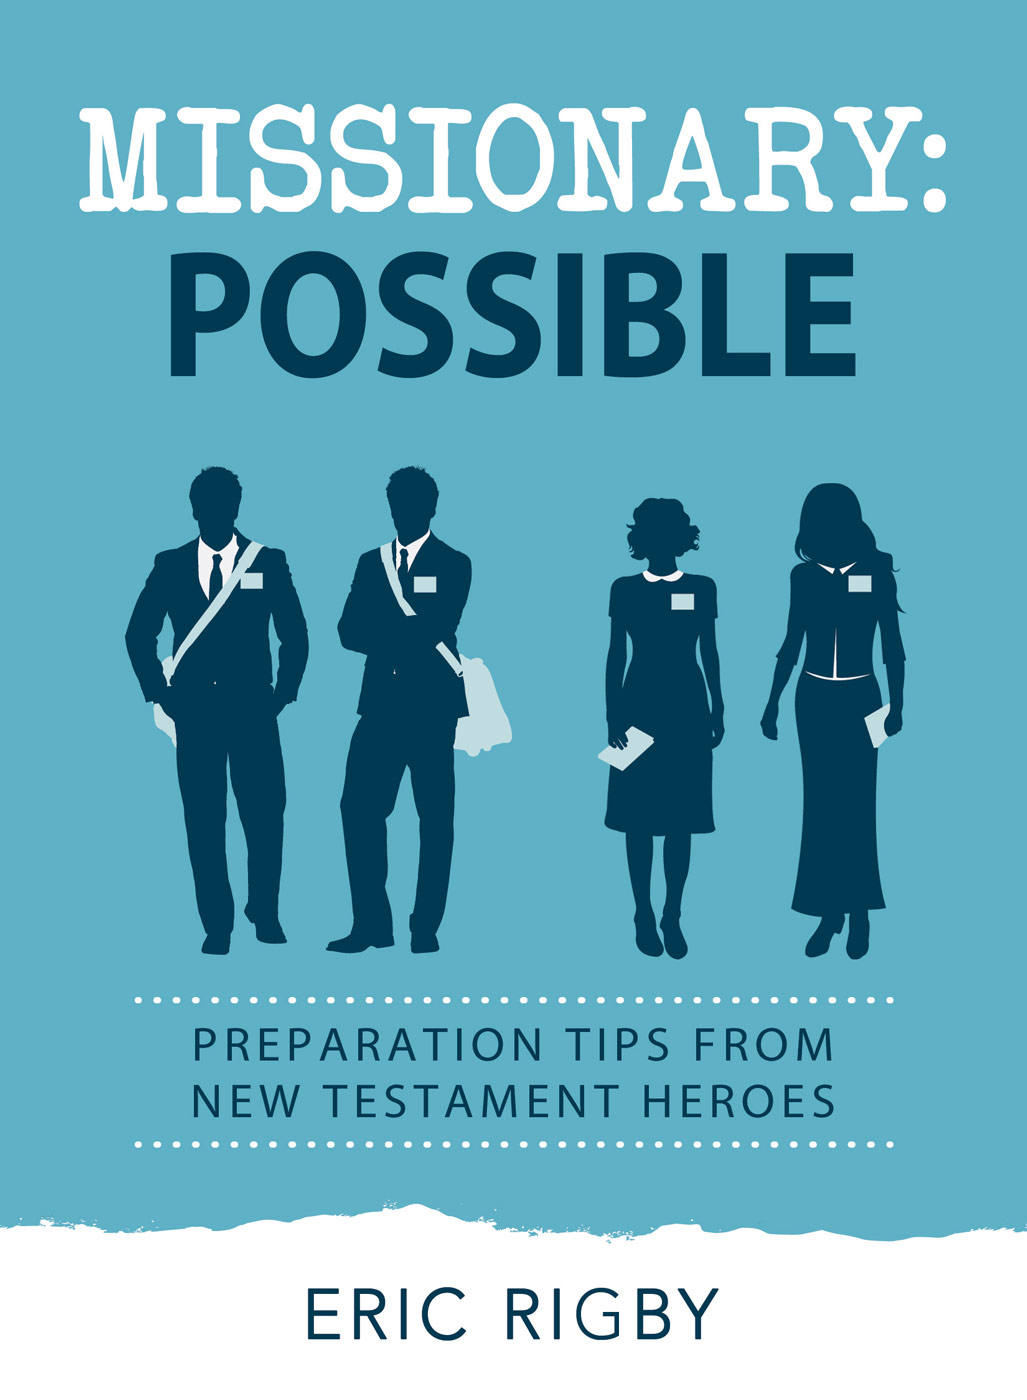 Missionary Possible by Eric Rigby~ Blog Tour